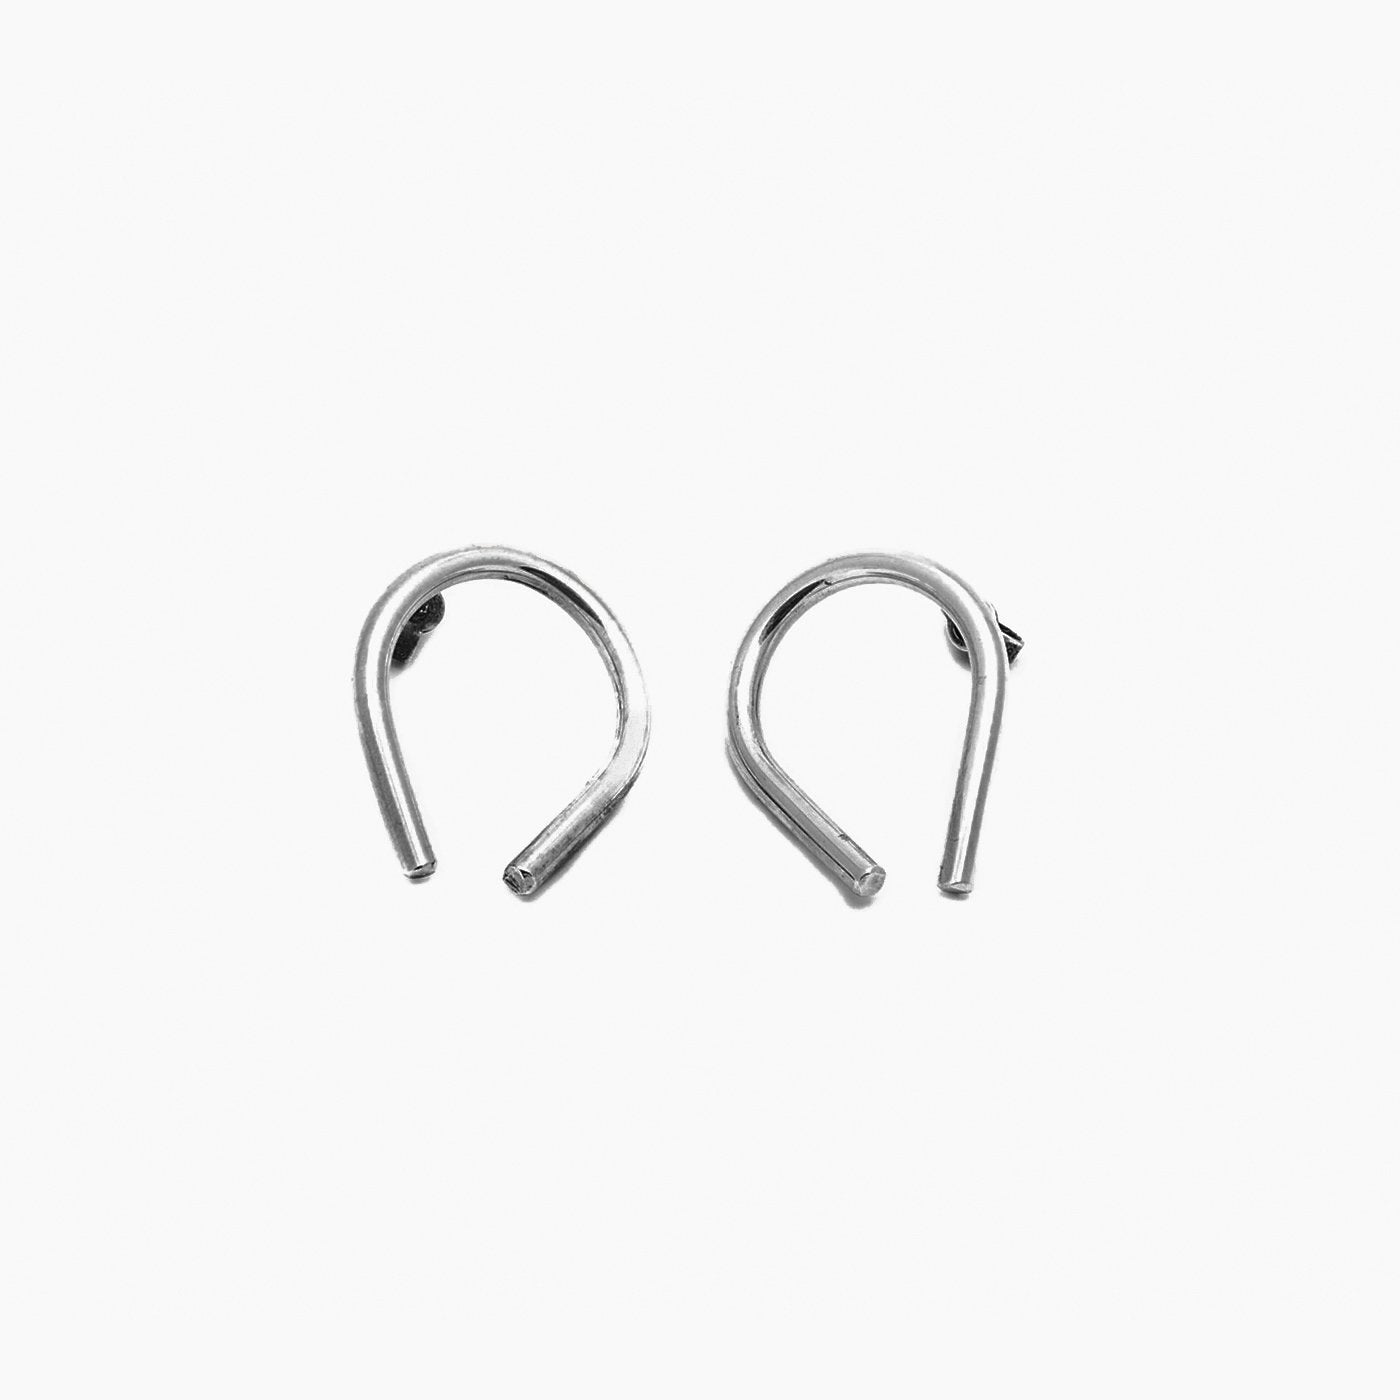 earrings chaotic curve silver product view innan jewllery